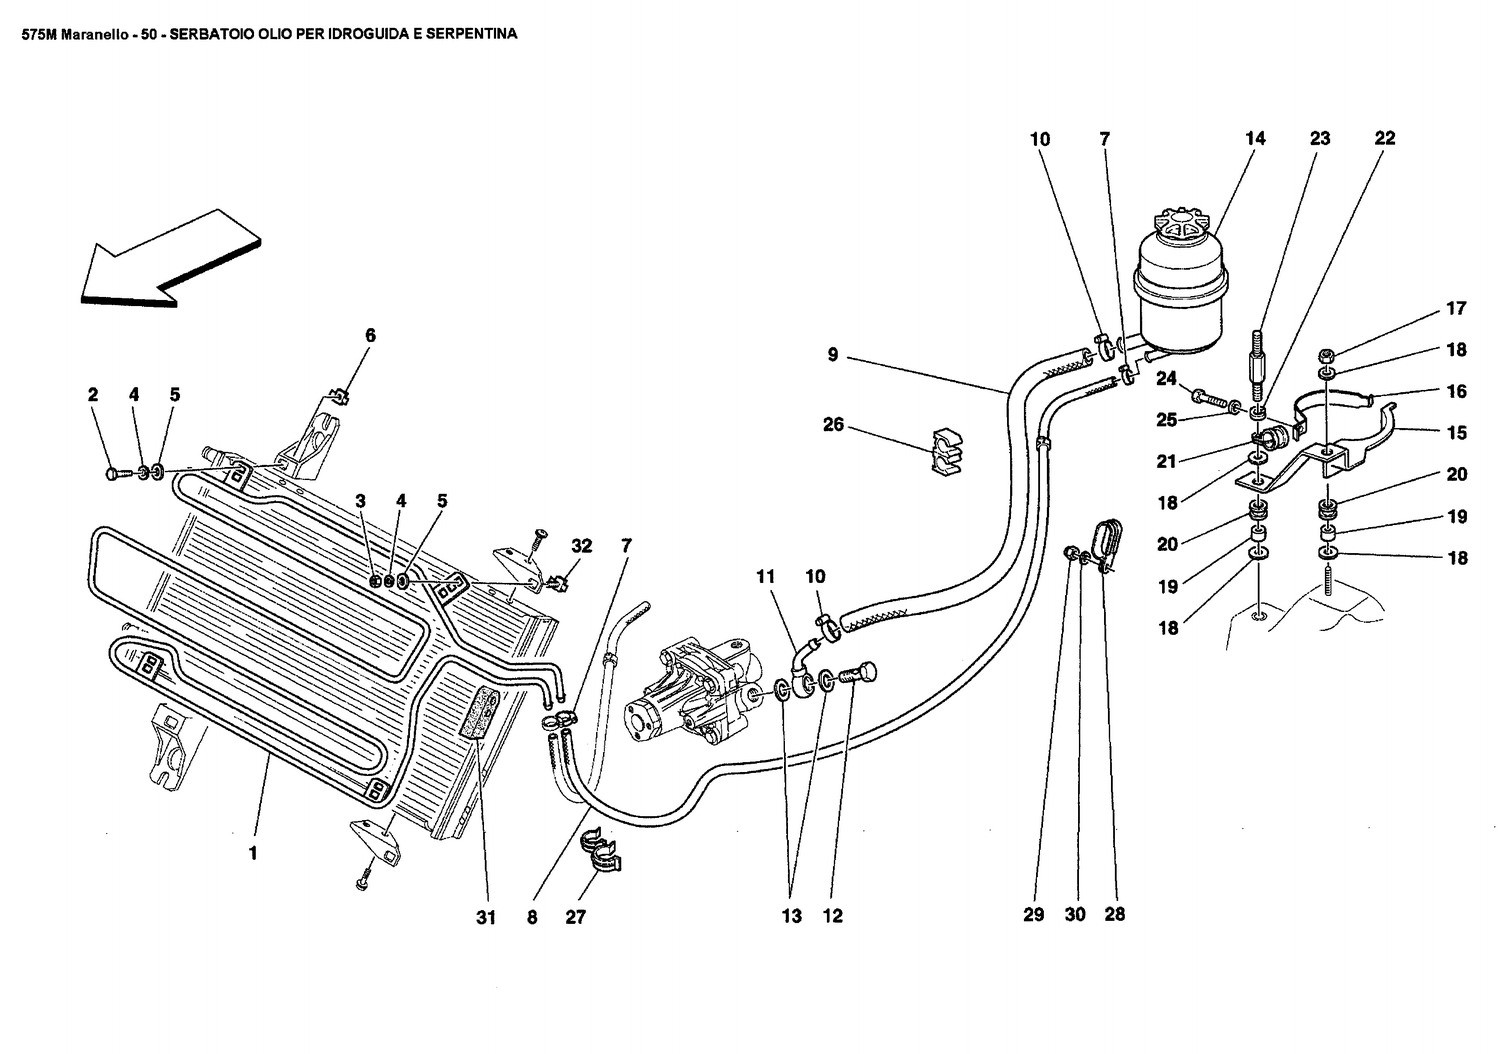 OIL TANK FOR SERVOSTEERING AND SERPENTINE